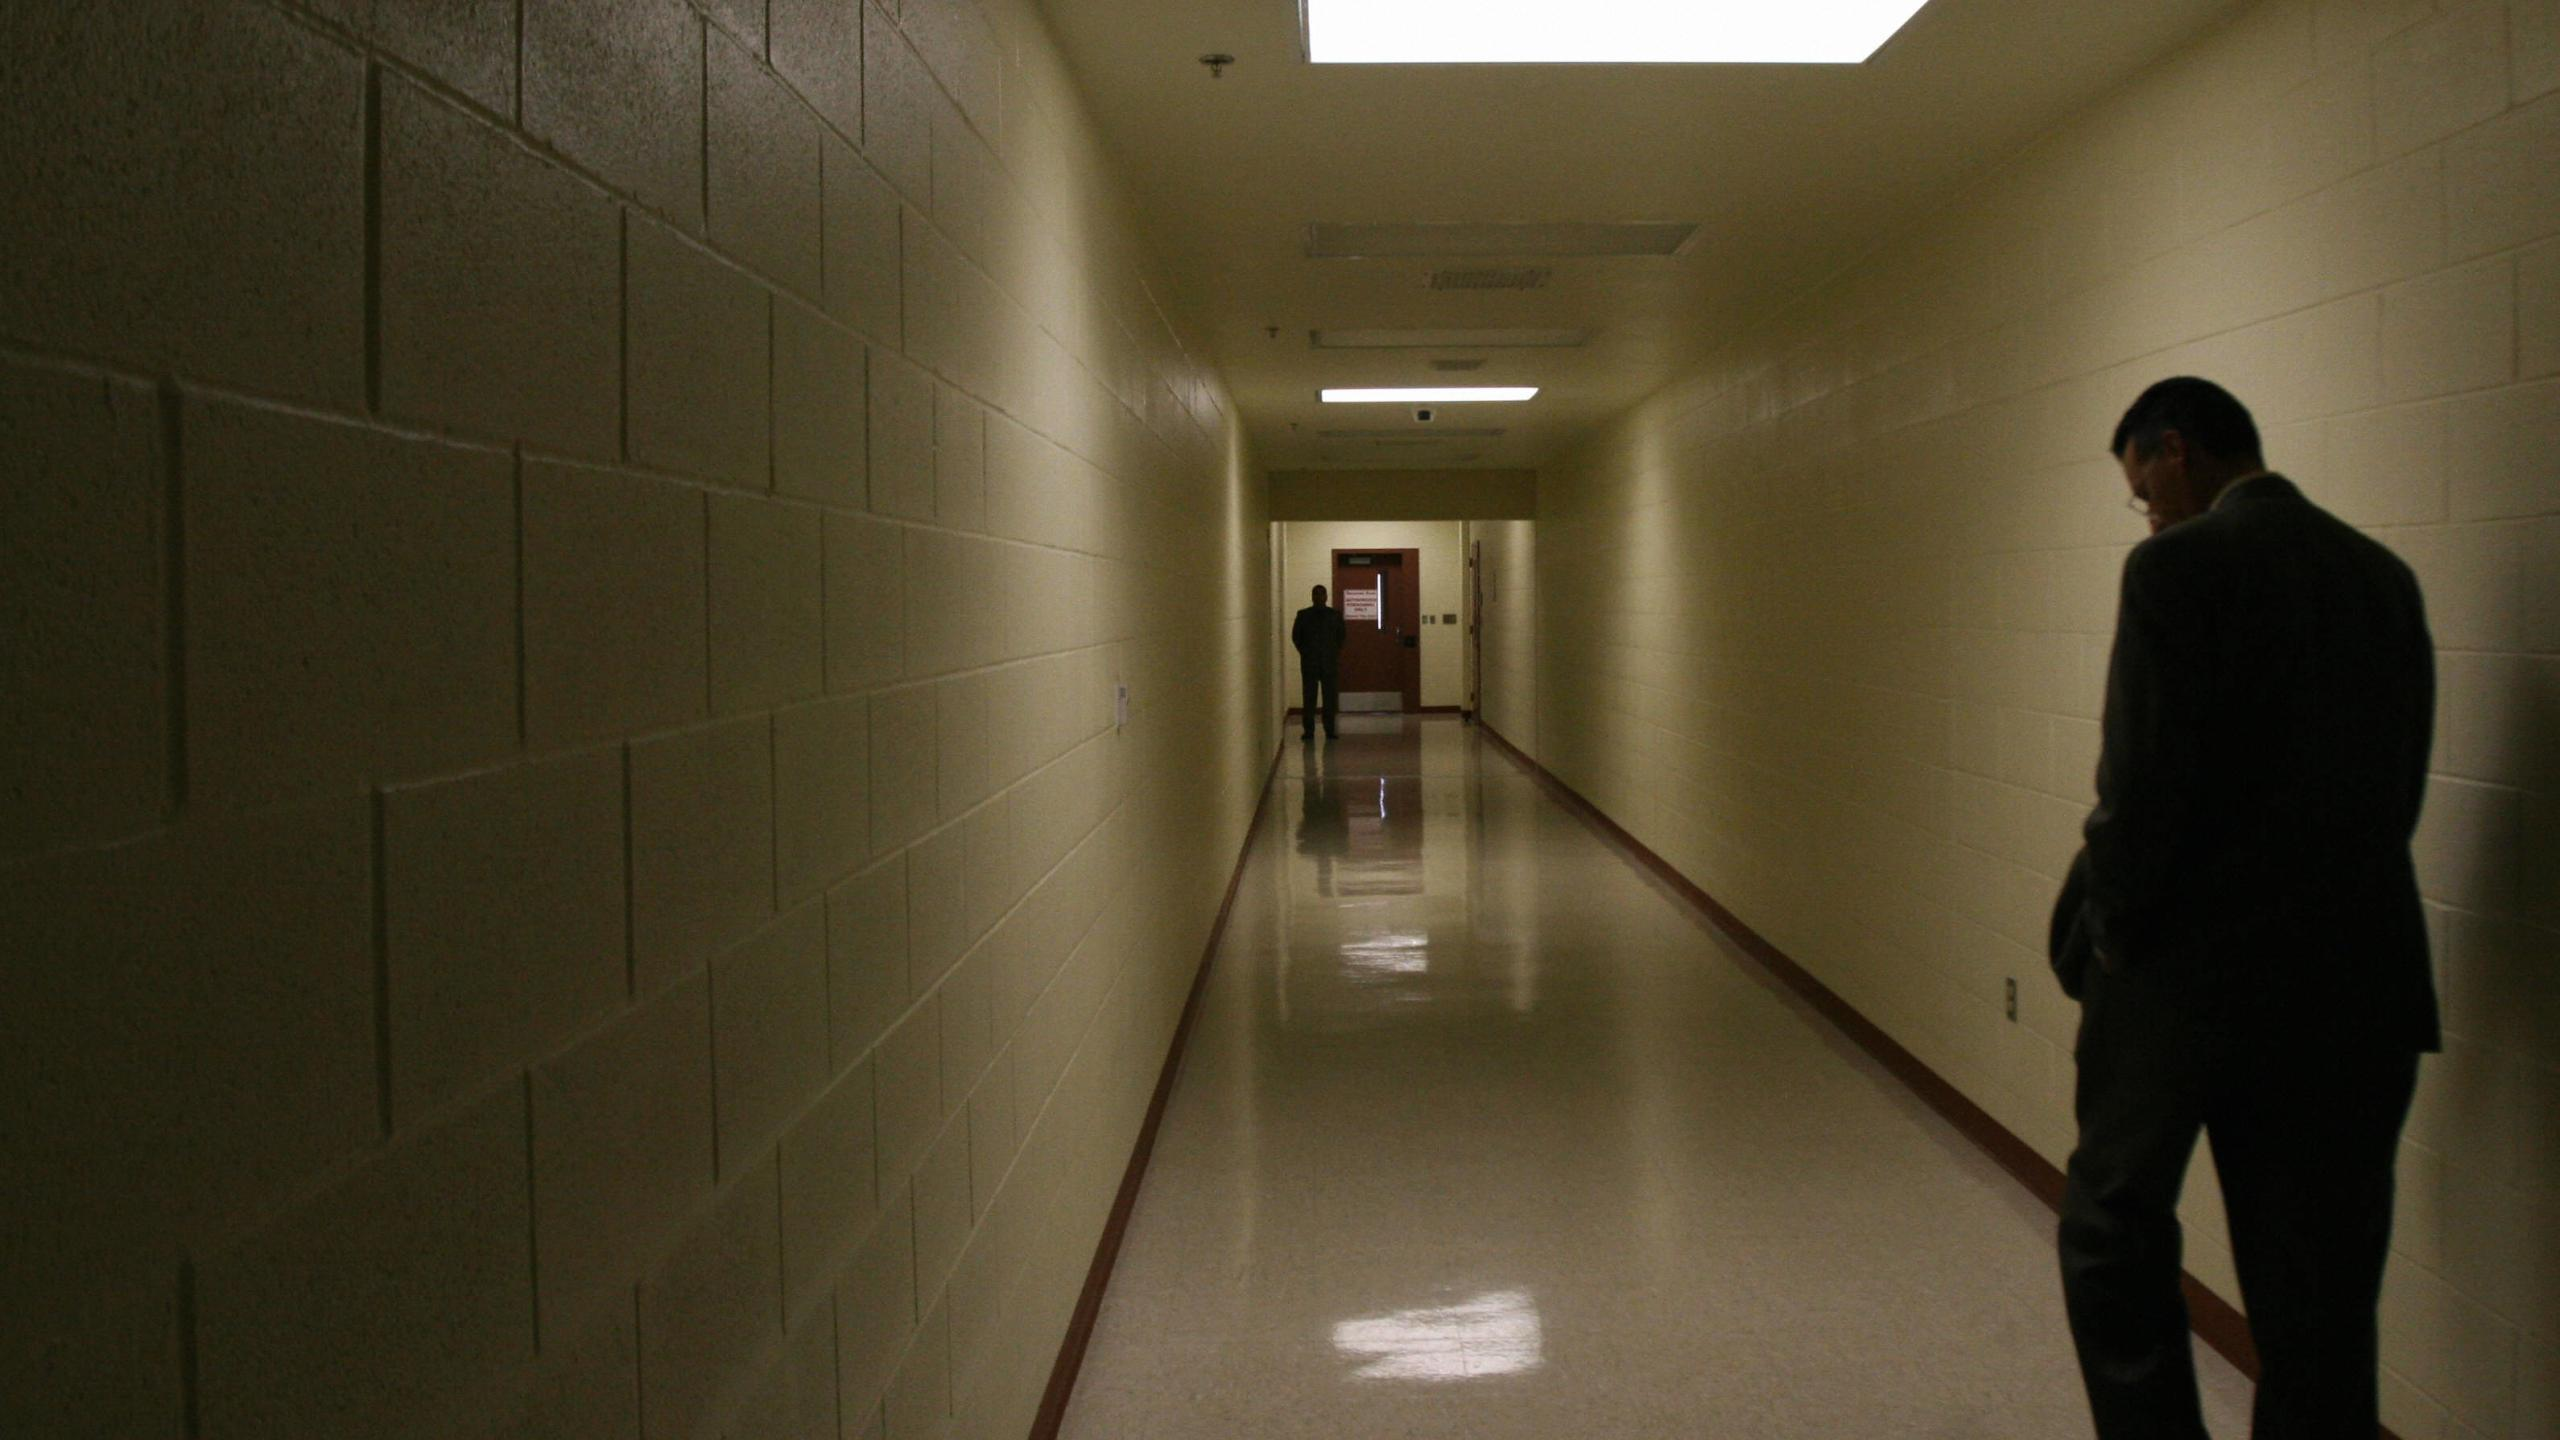 A corridor that leads to a guarded door is seen at the Port Isabel detention facility in Texas on Dec. 17, 2008. (Credit Jose Cabezas / AFP / Getty Images)